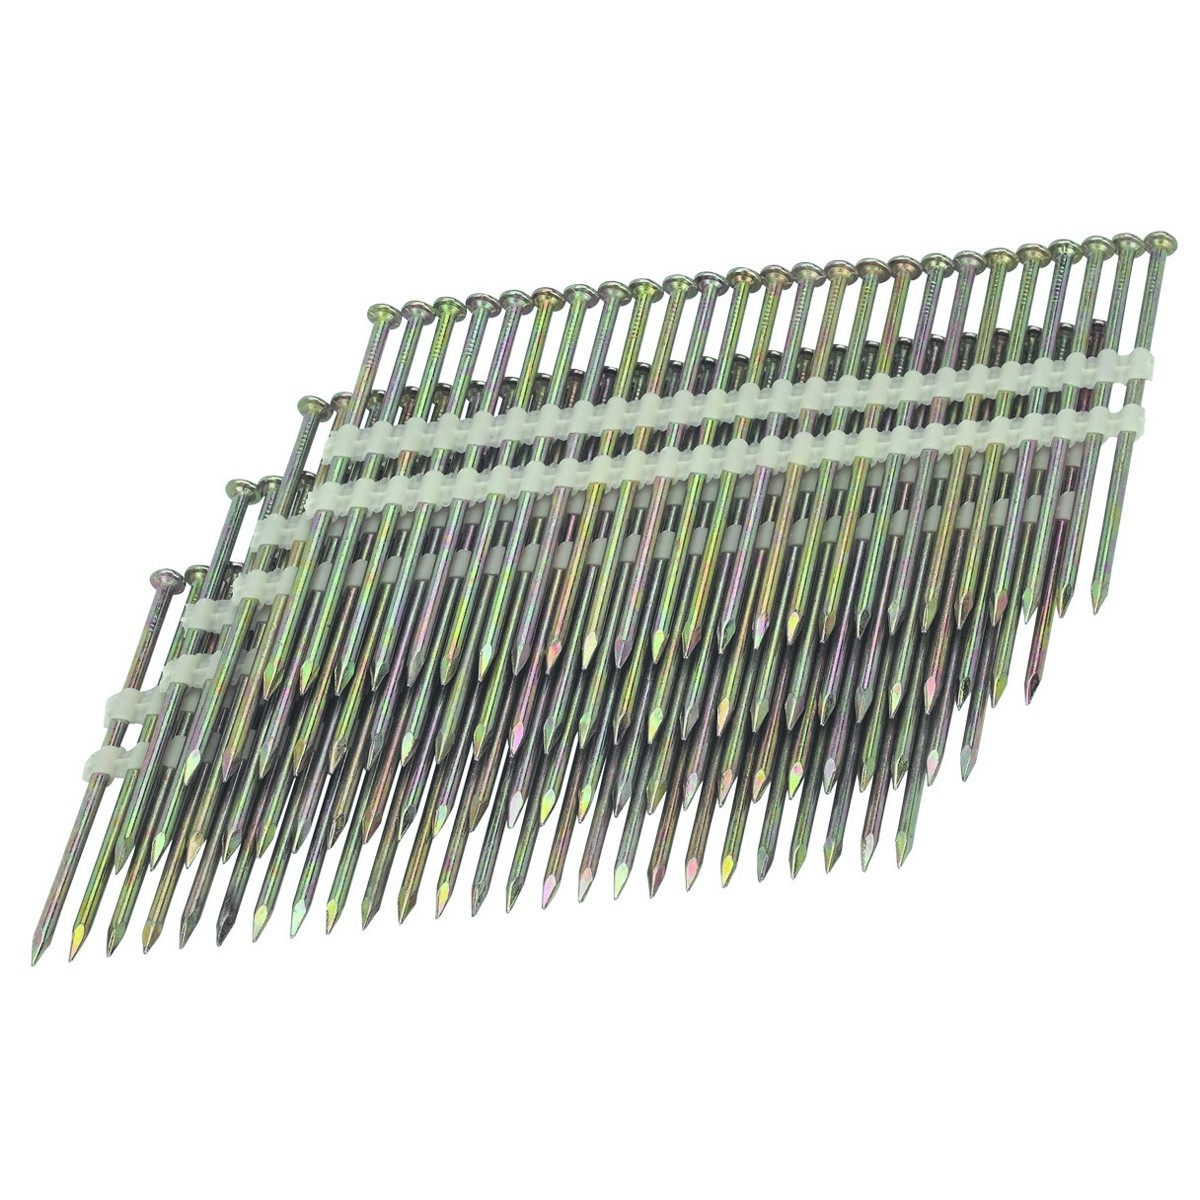 21 3-1/2 in. 10 Gauge Galvanized Smooth Shank Nails 2000 Pc